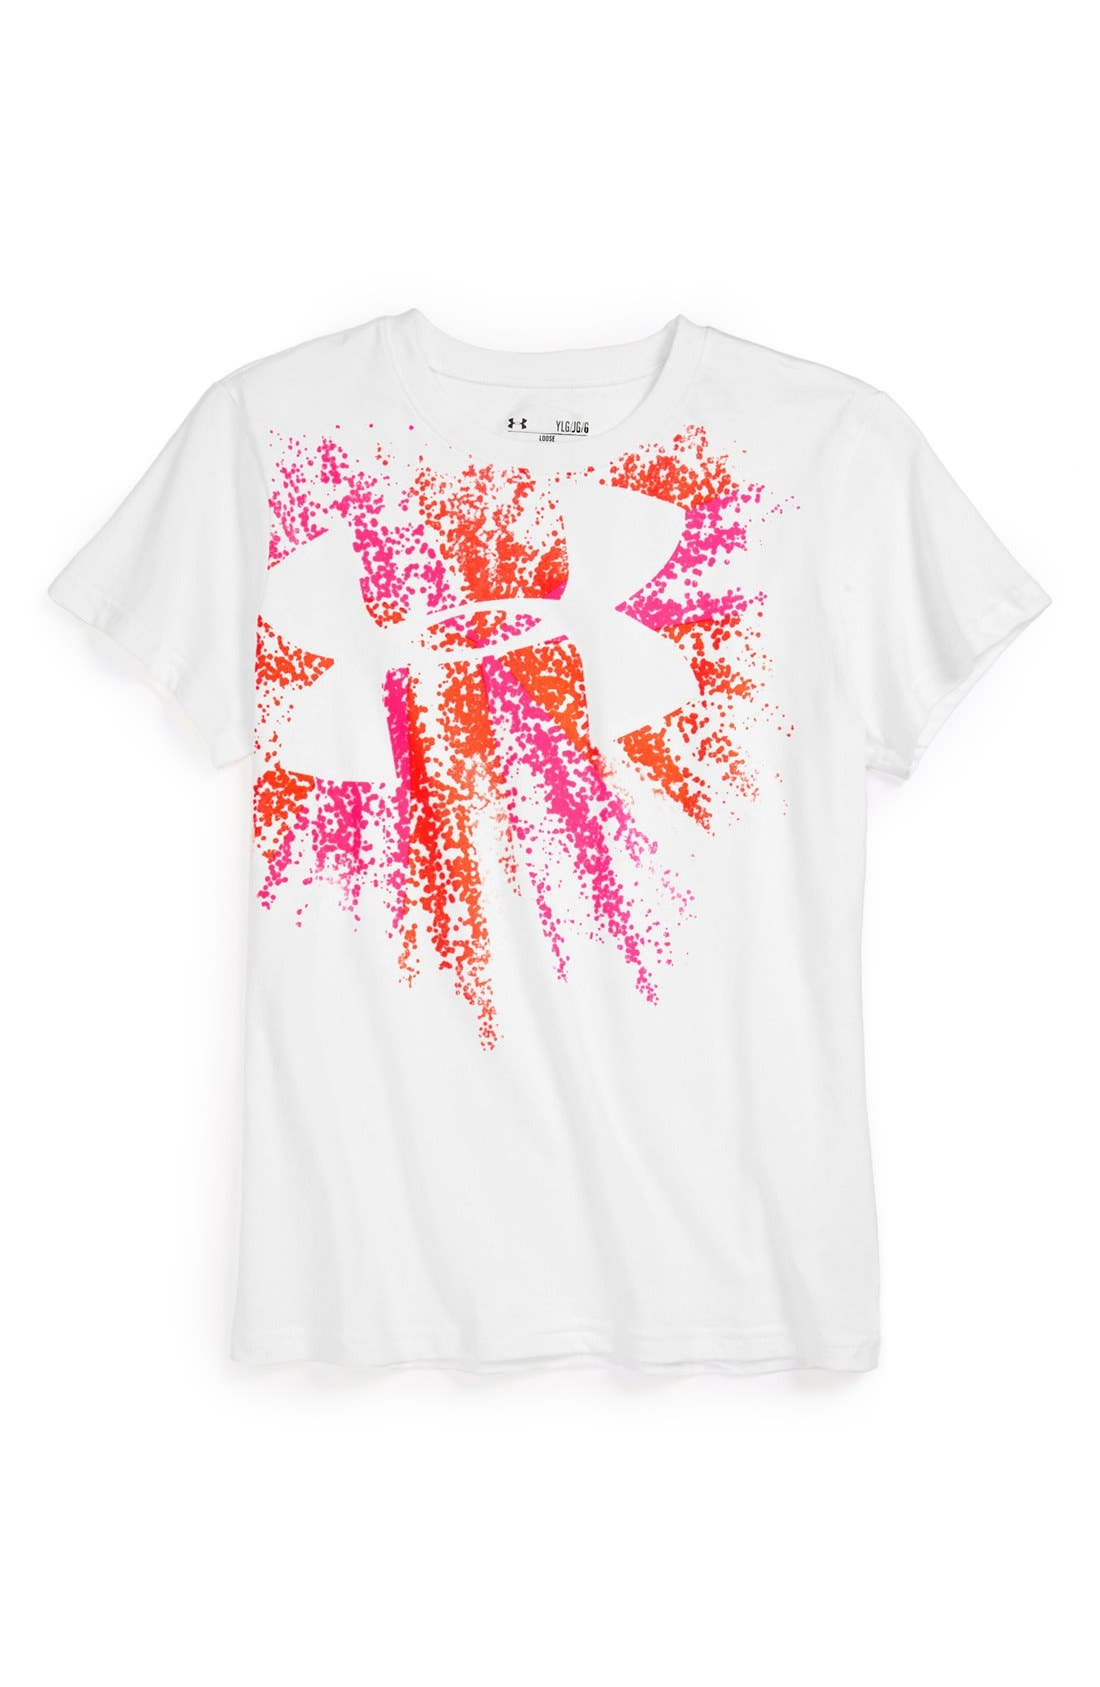 Alternate Image 1 Selected - Under Armour 'Logo Burst' Graphic Tee (Big Girls)